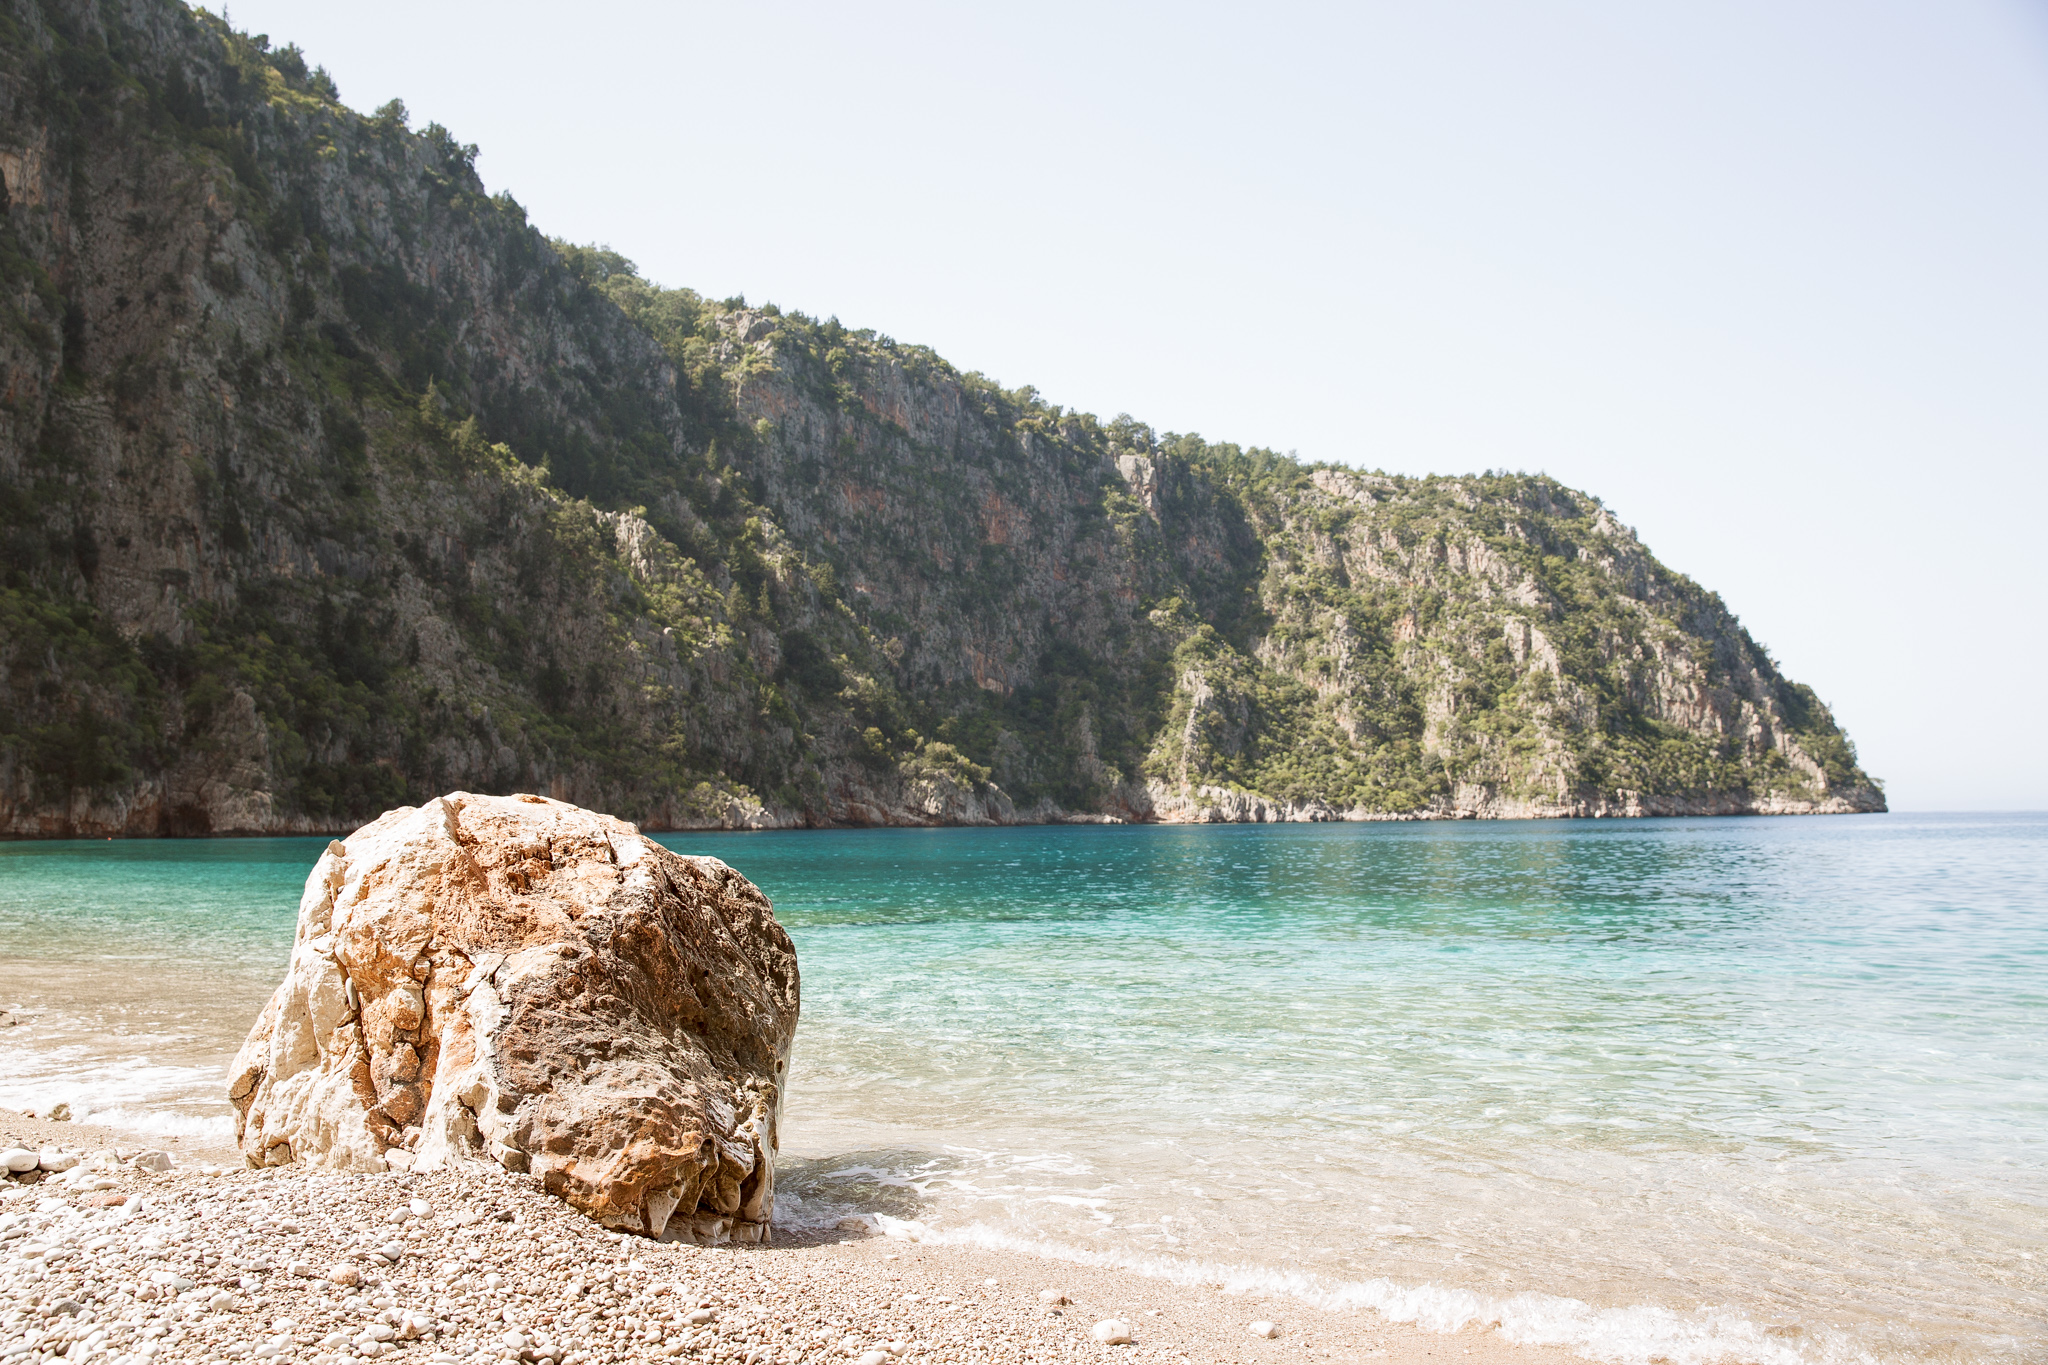 lycian-way_butterfly-valley_decent_beach-3124_boulder-on-beach.jpg